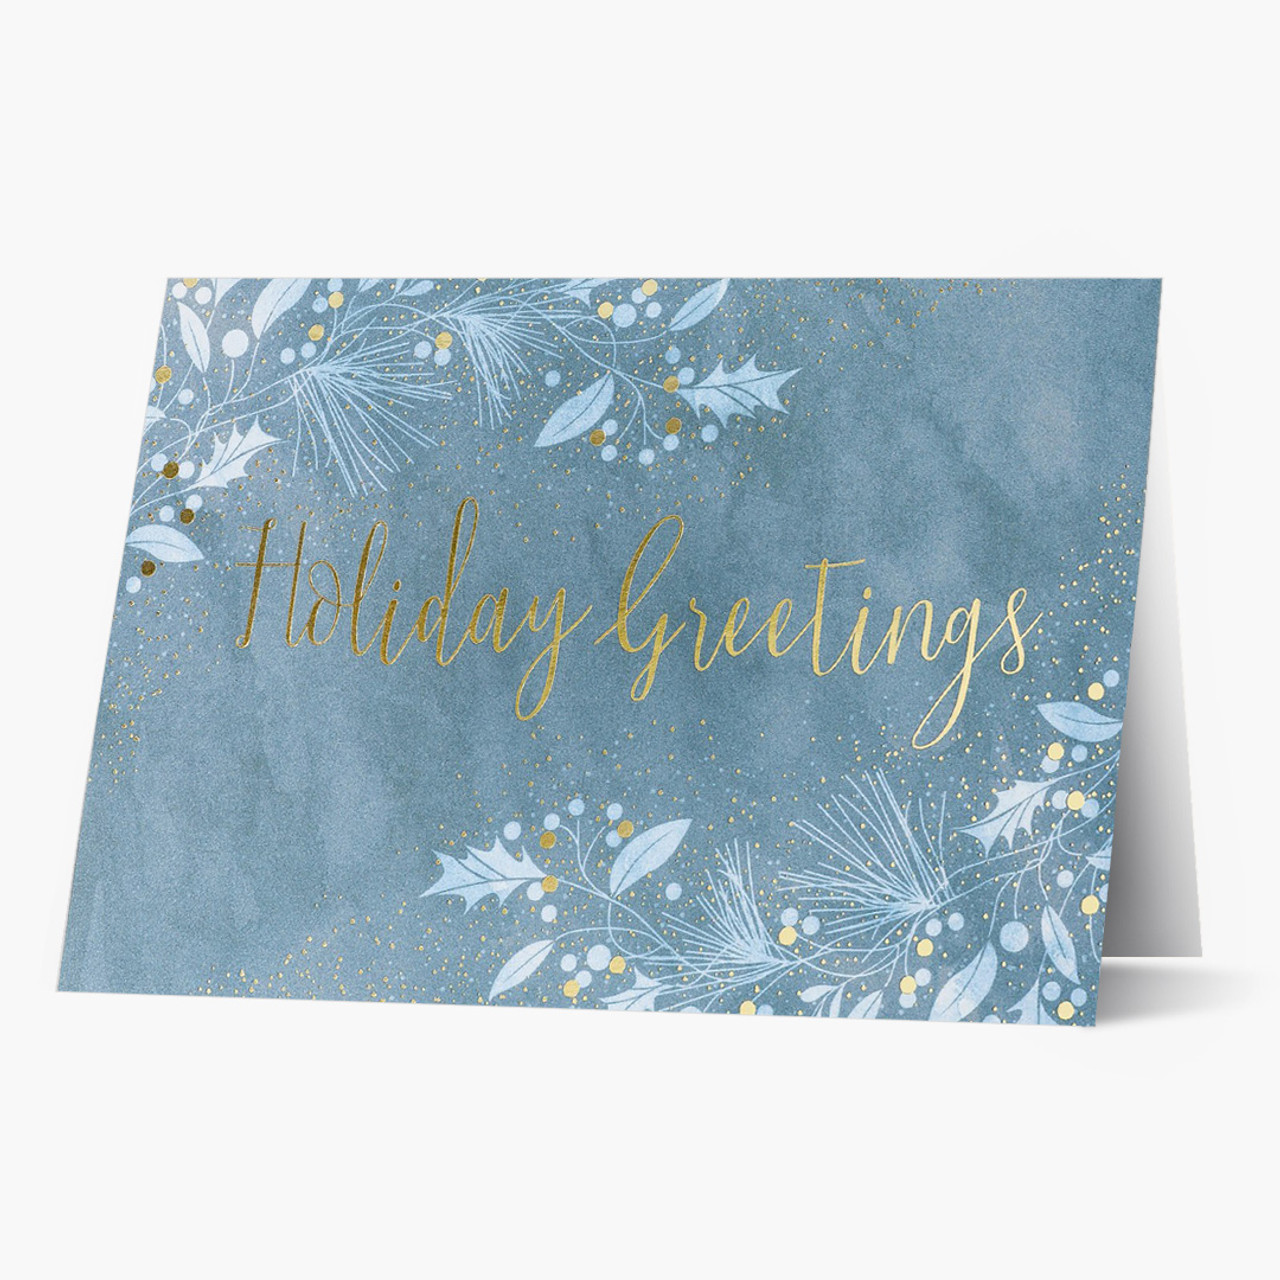 Watercolor Greetings Christmas Card